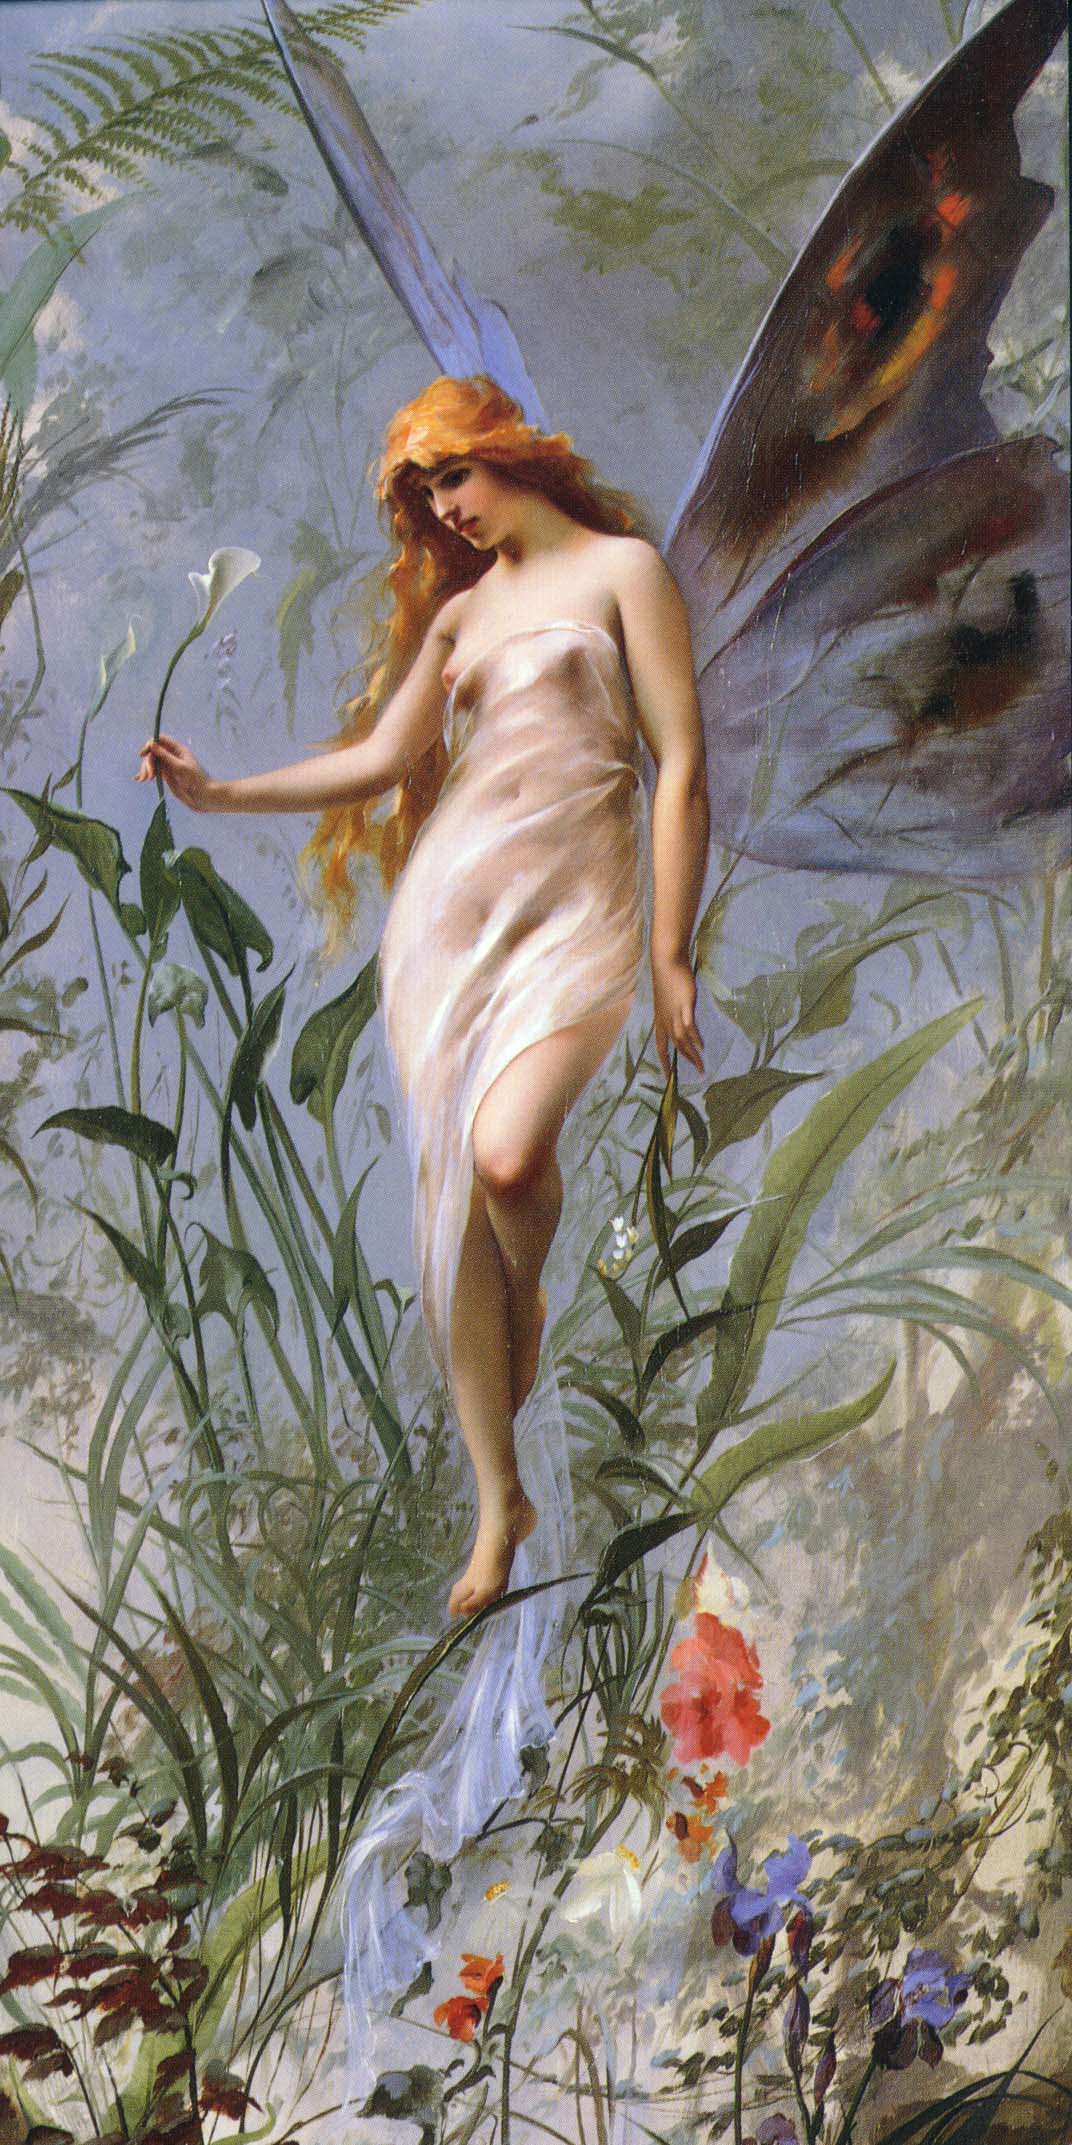 http://upload.wikimedia.org/wikipedia/commons/c/c5/Falero_Luis_Ricardo_Lily_Fairy_1888.jpg